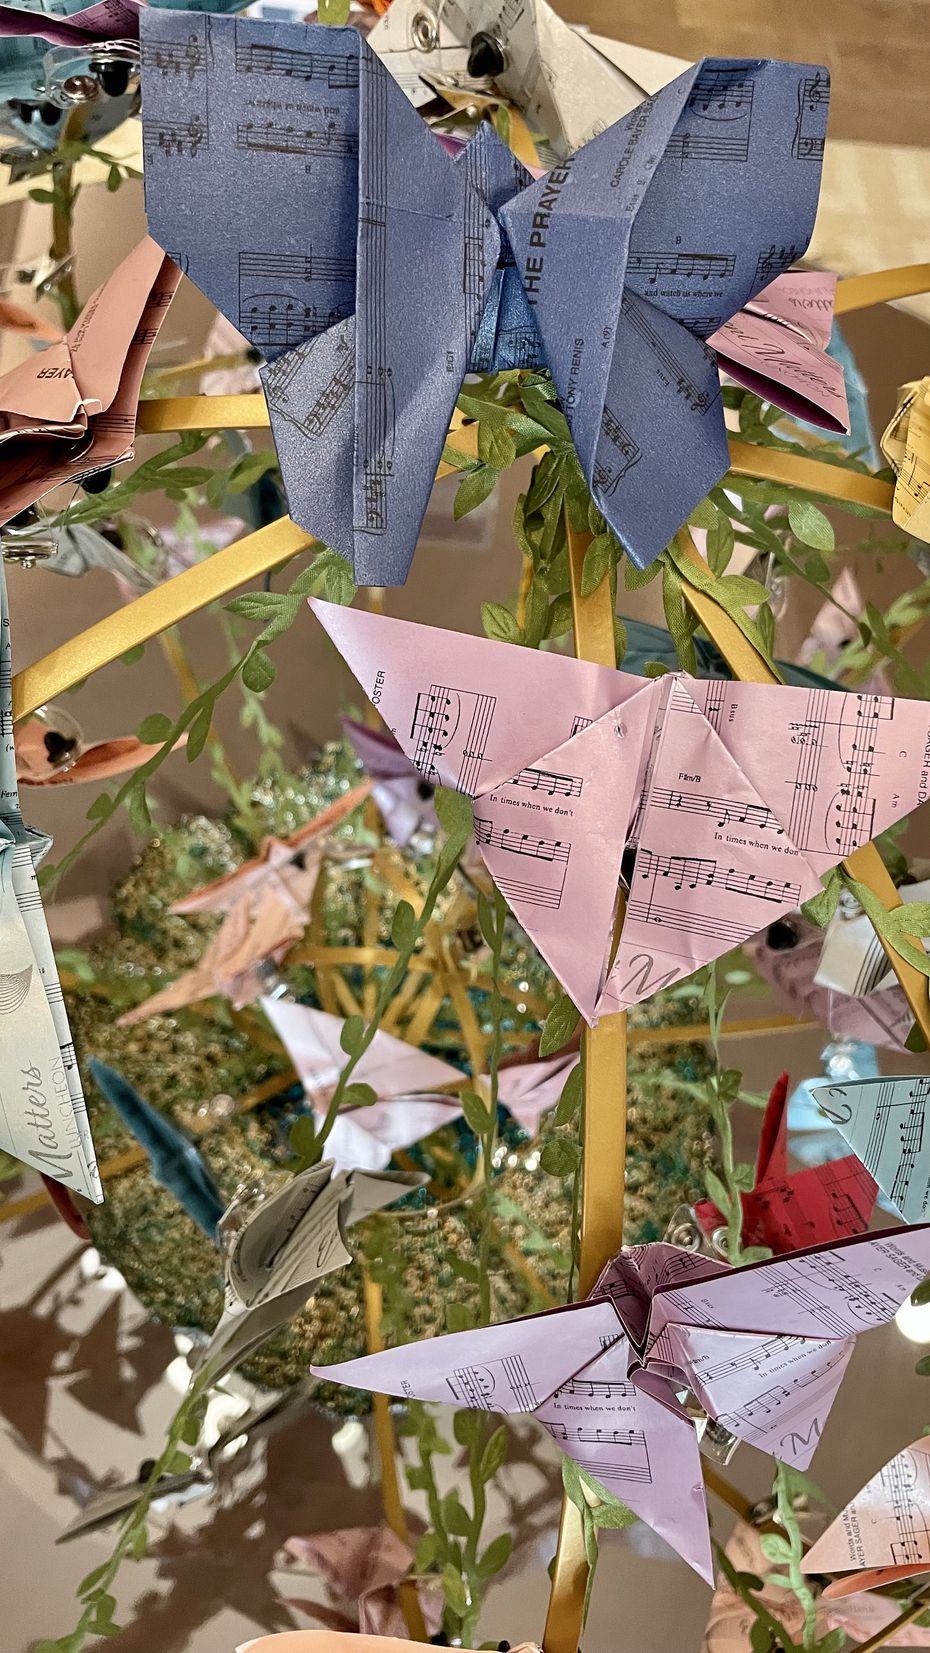 The life cycle of a Presbyterian Village North origami butterfly begins with a piece of sheet music.